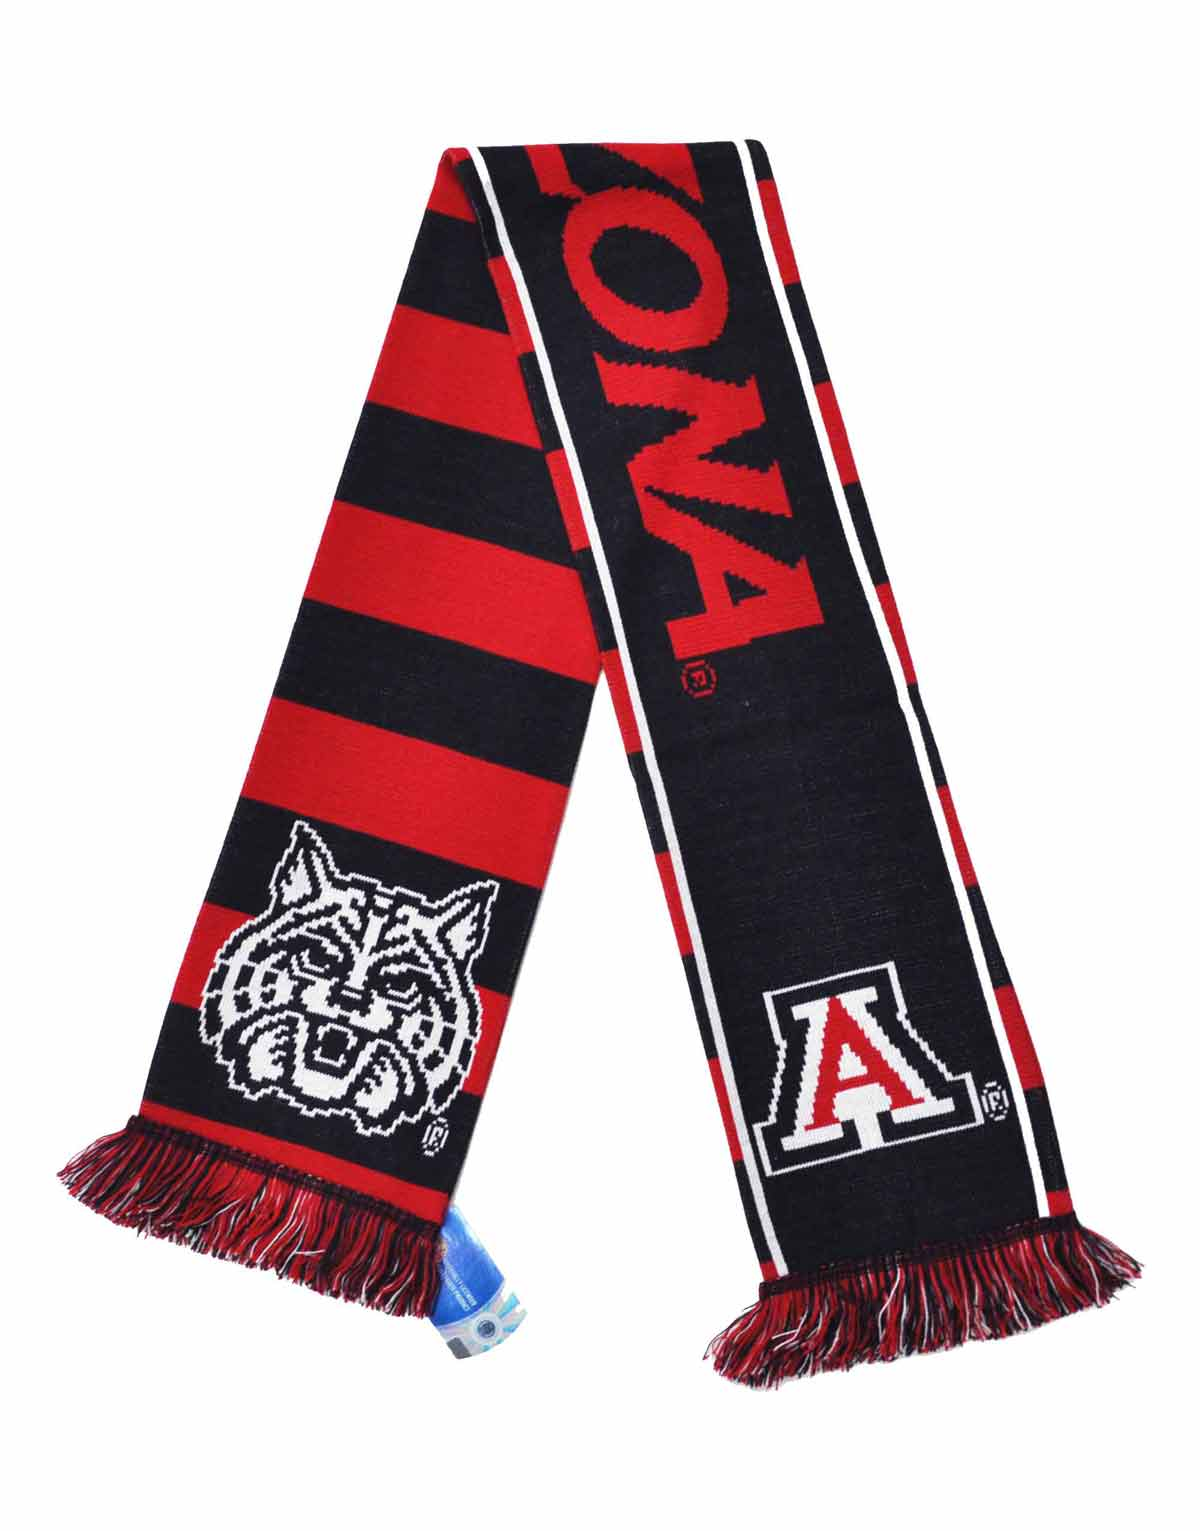 Official University of Arizona Wildcats Knitted Scarf